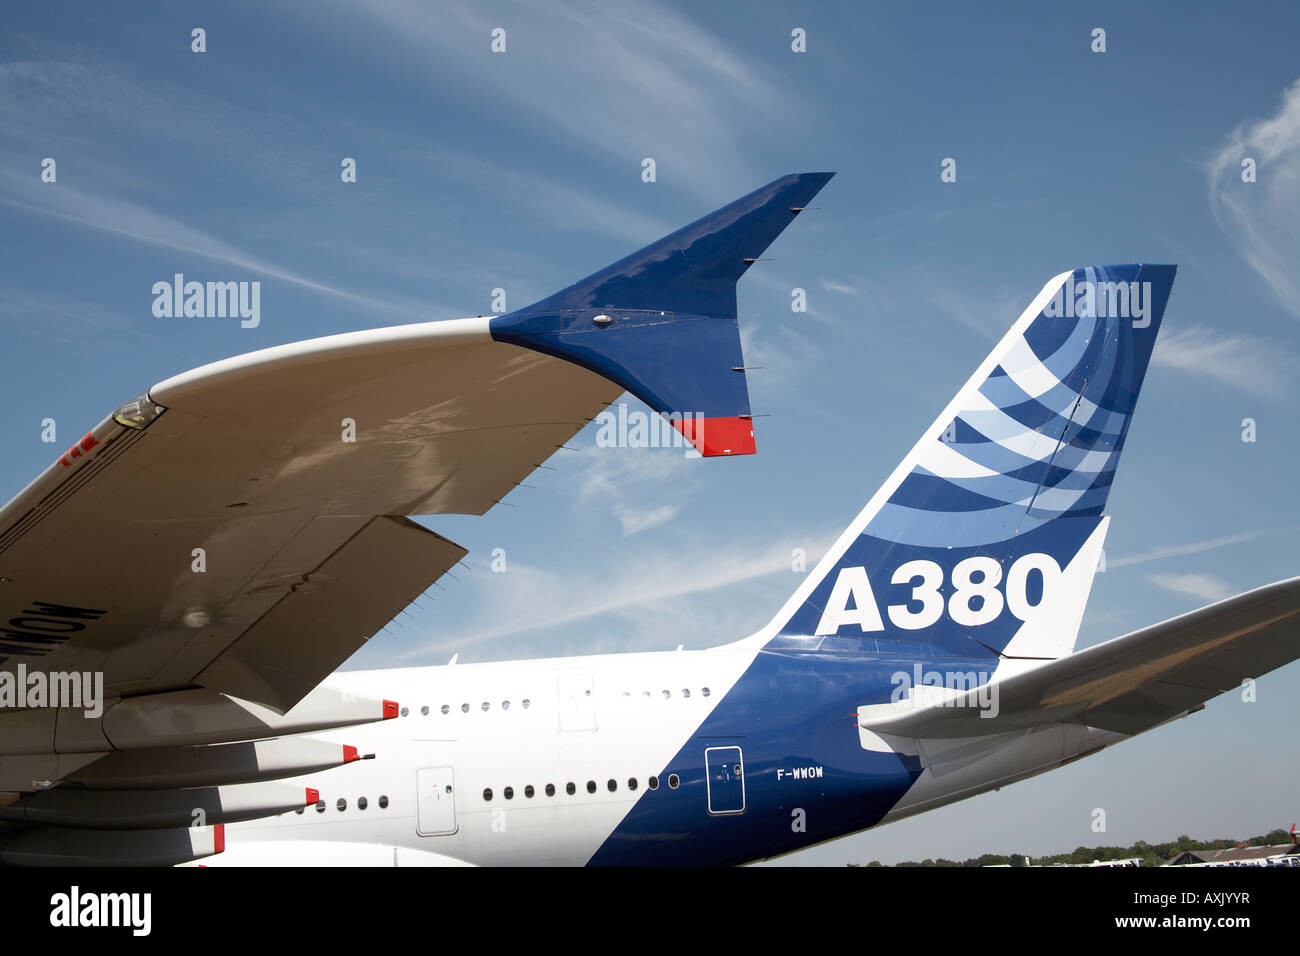 Airbus A380 superjumbo double deck aircraft on static display at Farnborough International Airshow July 2006 Wingtip - Stock Image